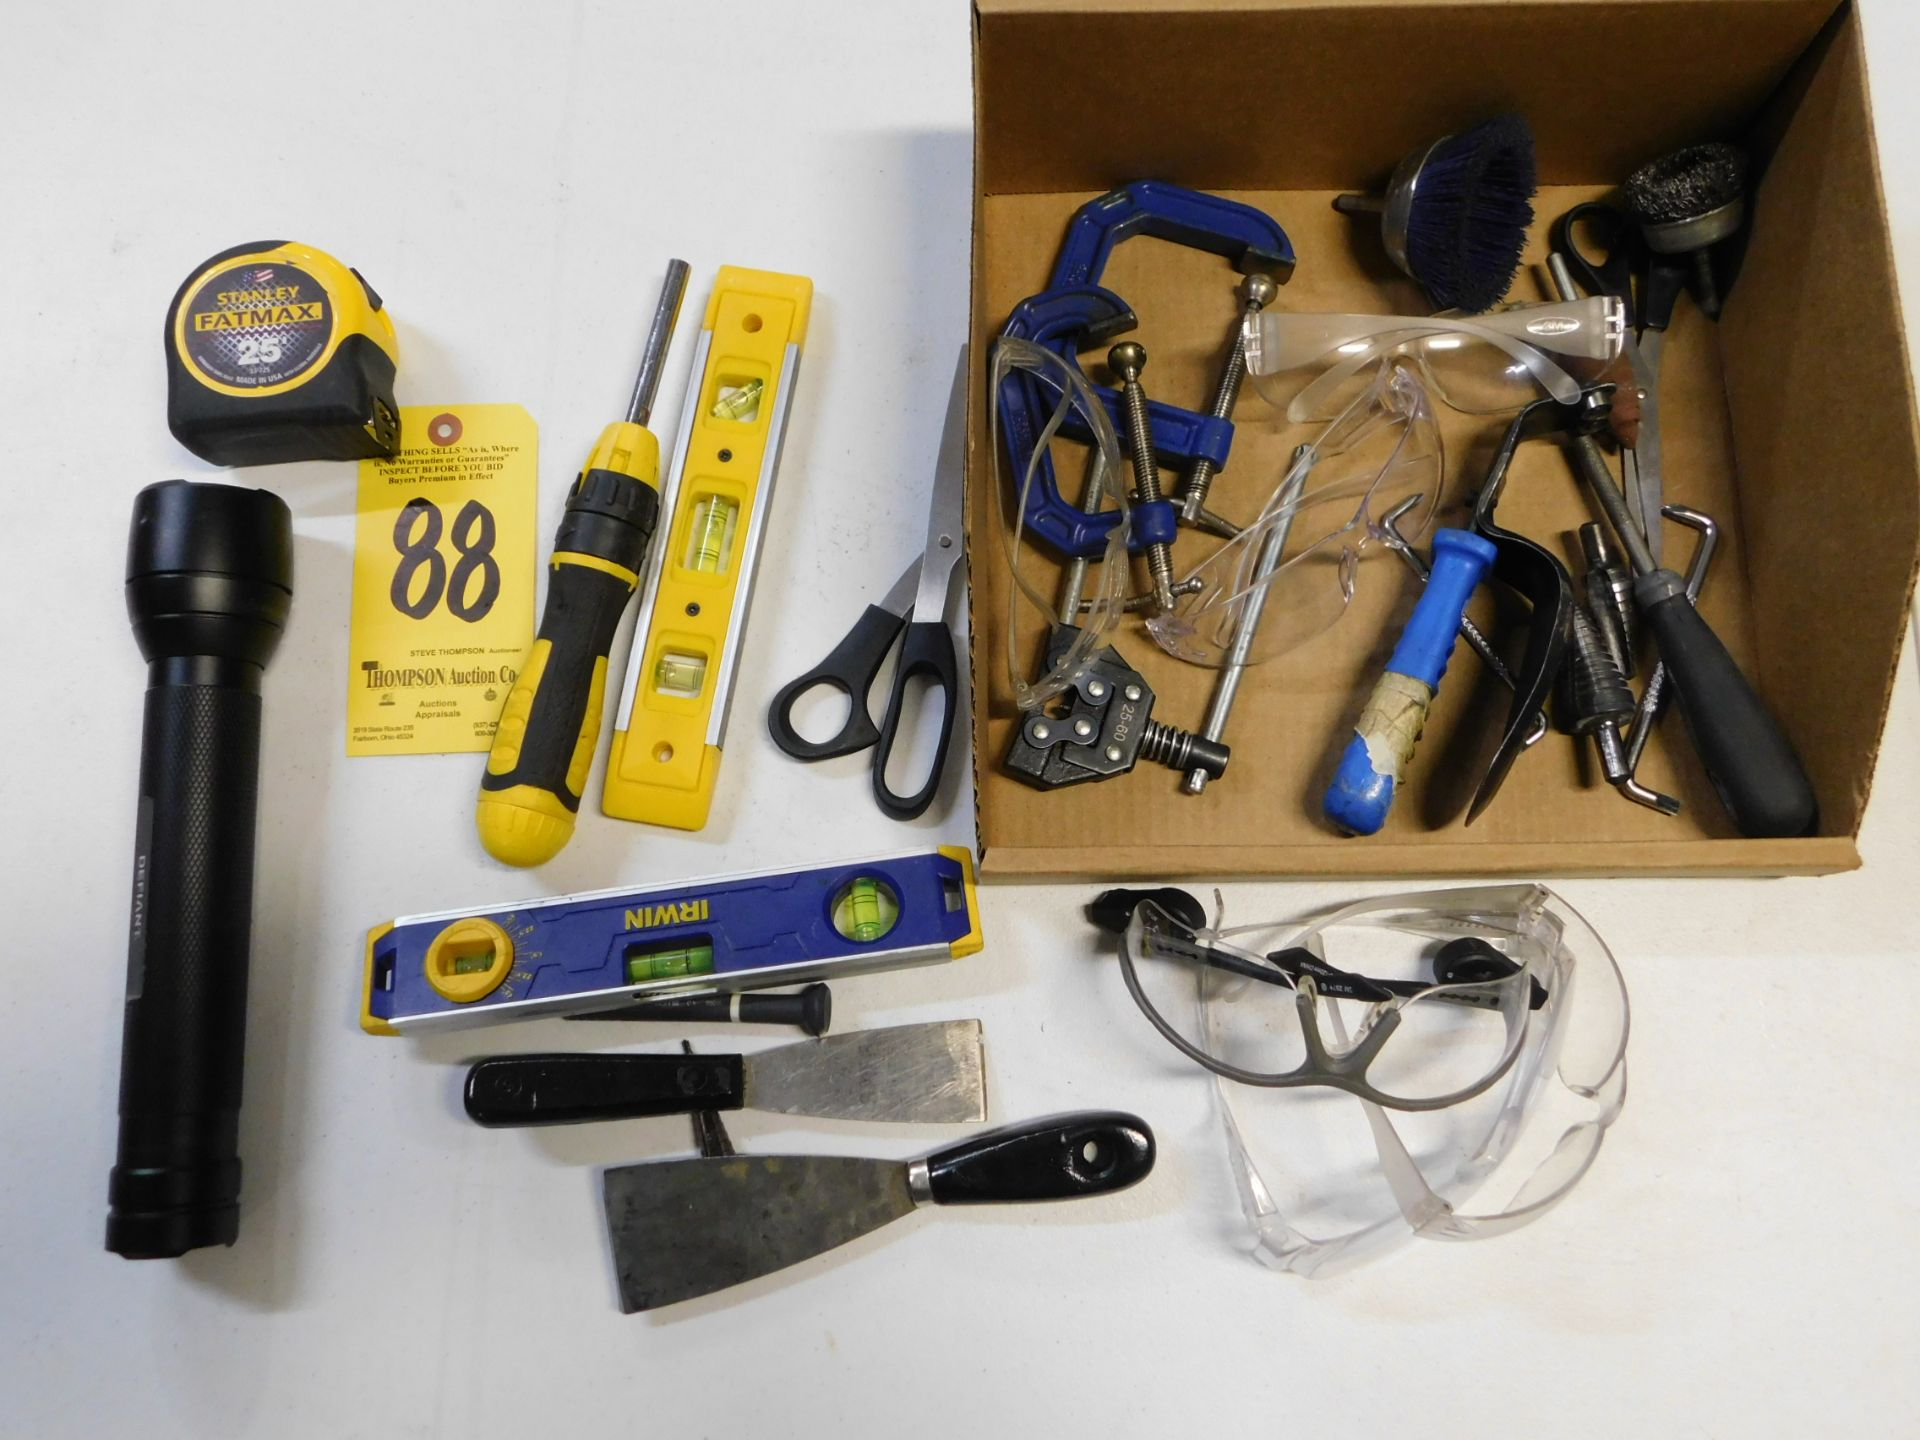 Miscellaneous Hand Tools, Lot Location 3204 Olympia Dr. A, Lafayette, IN 47909